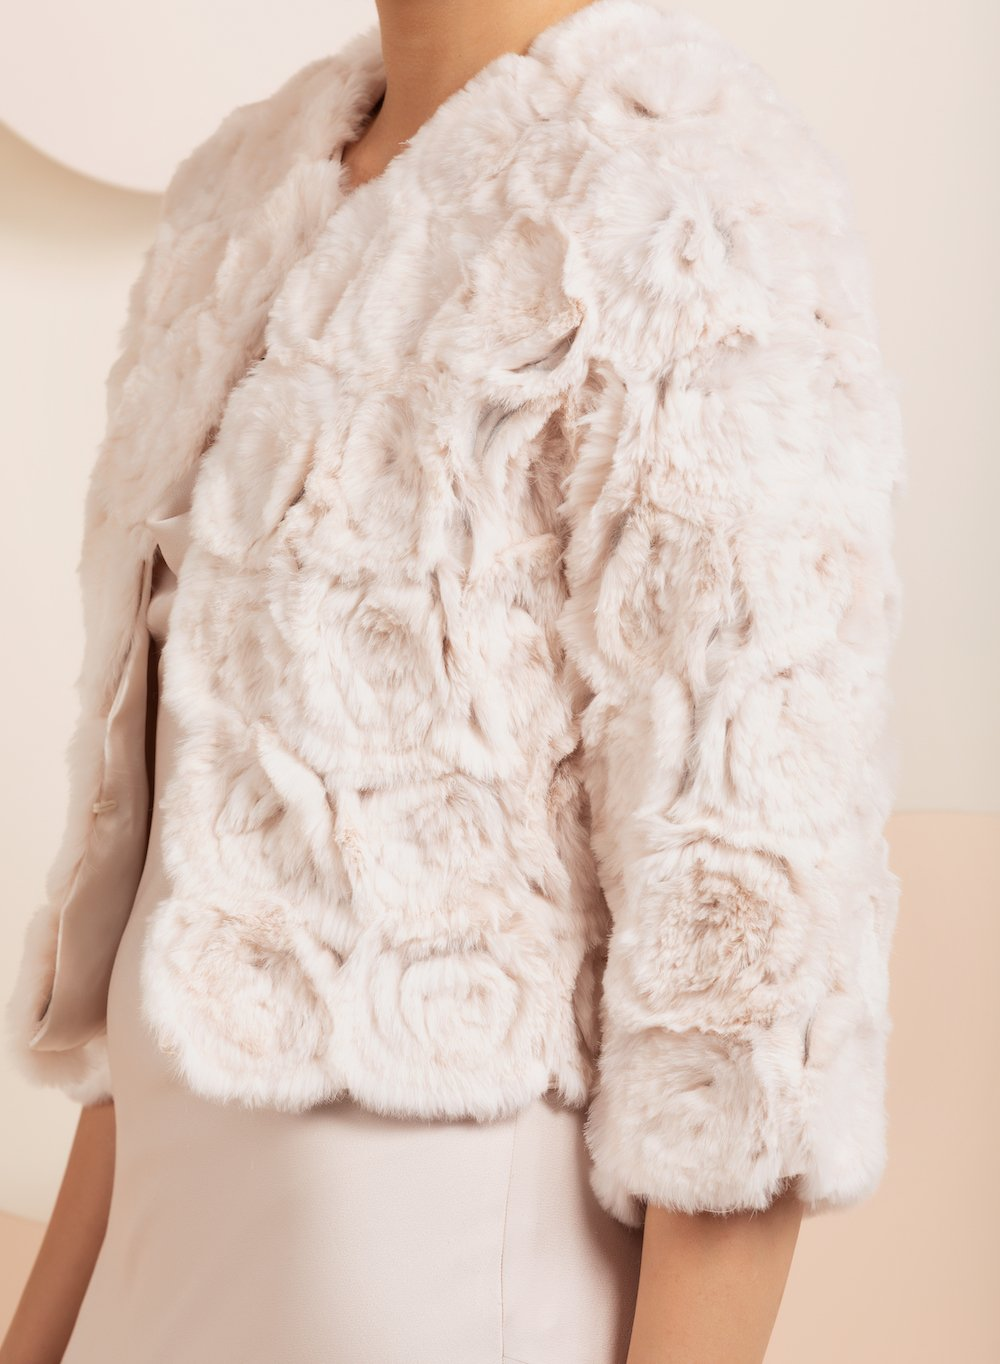 Willow Blush Fur Jacket - 10-12 Day Pre Order